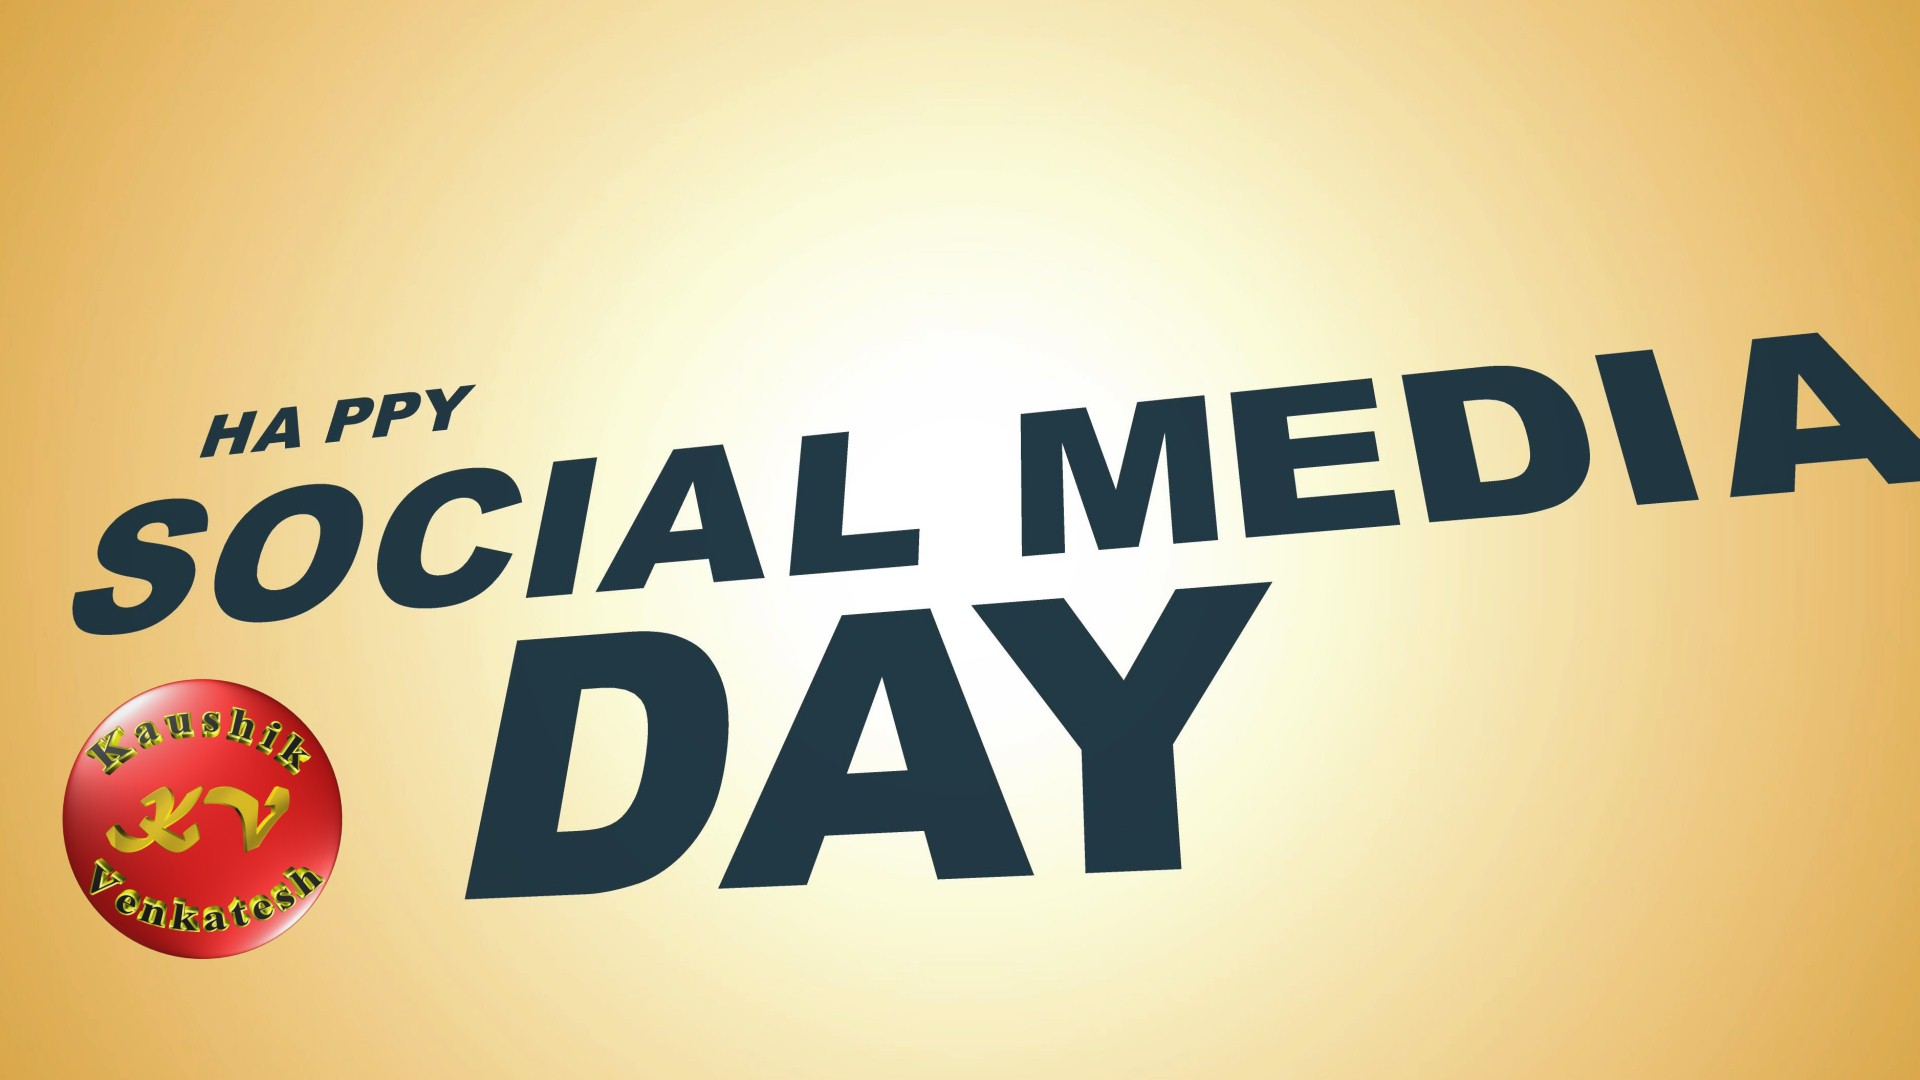 Greetings Image of Happy Social Media Day Wishes